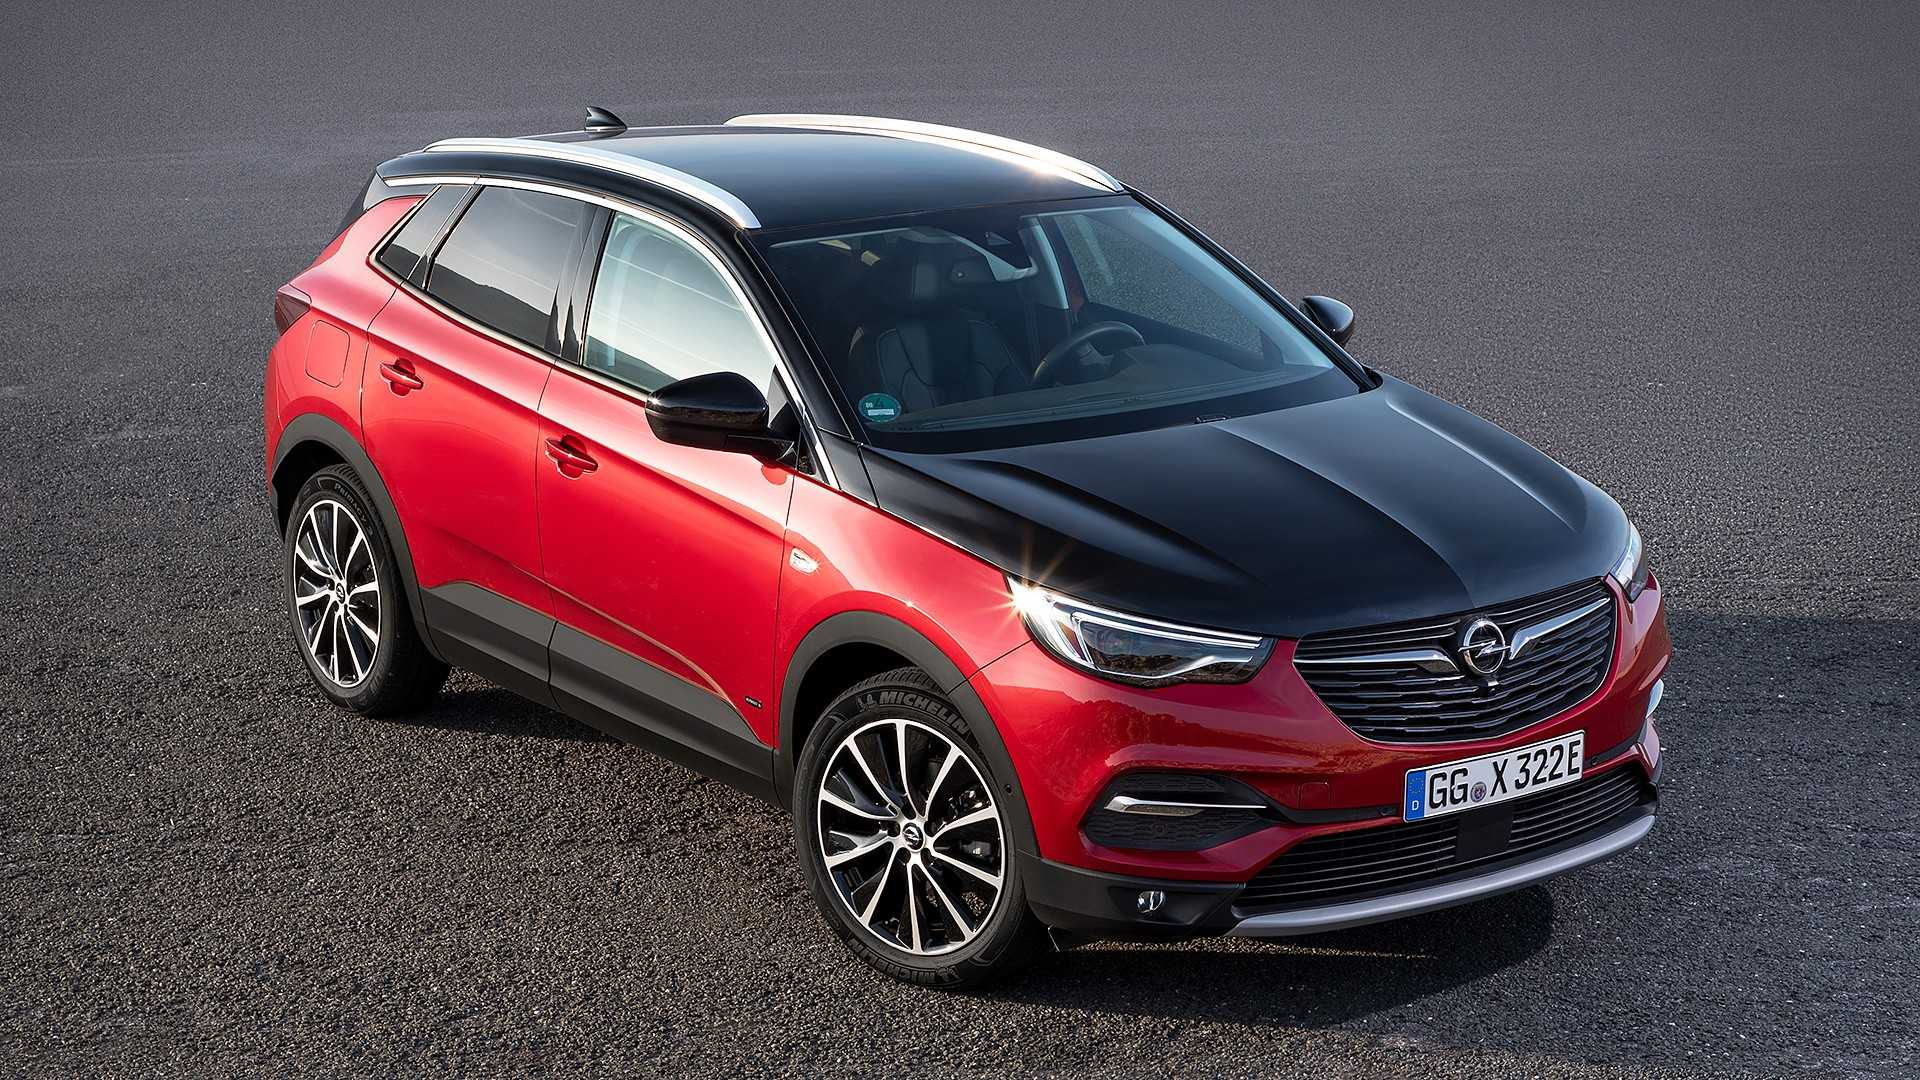 2019 Opel Grandland X Hybrid4 Release Date >> Opel Grandland X Plug In Hybrid4 Unveiled With 300 Hp And Awd